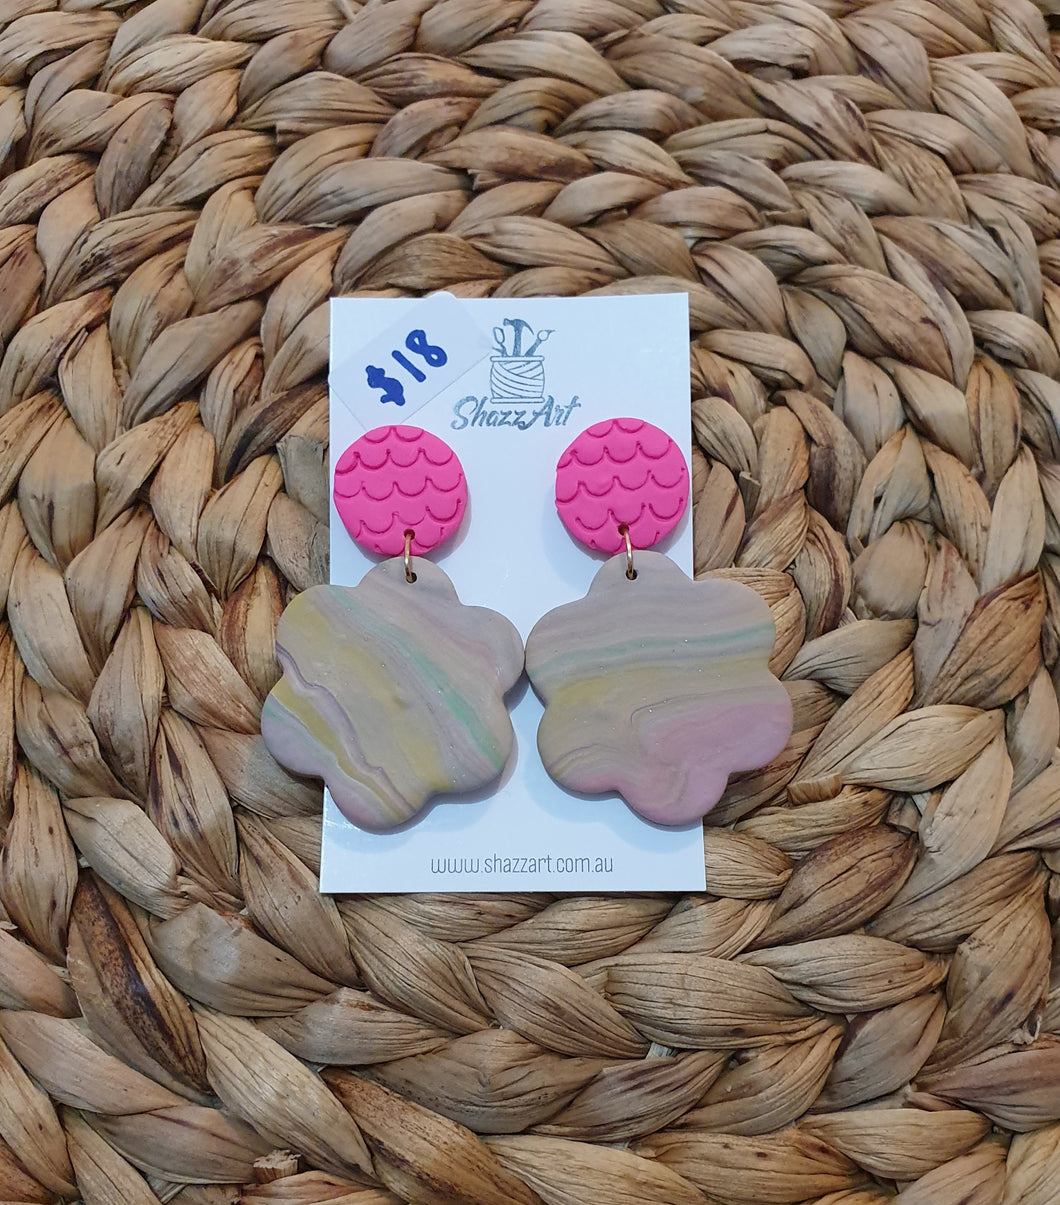 Hot Pink and Pastel Swirl Studs - Shazz Art